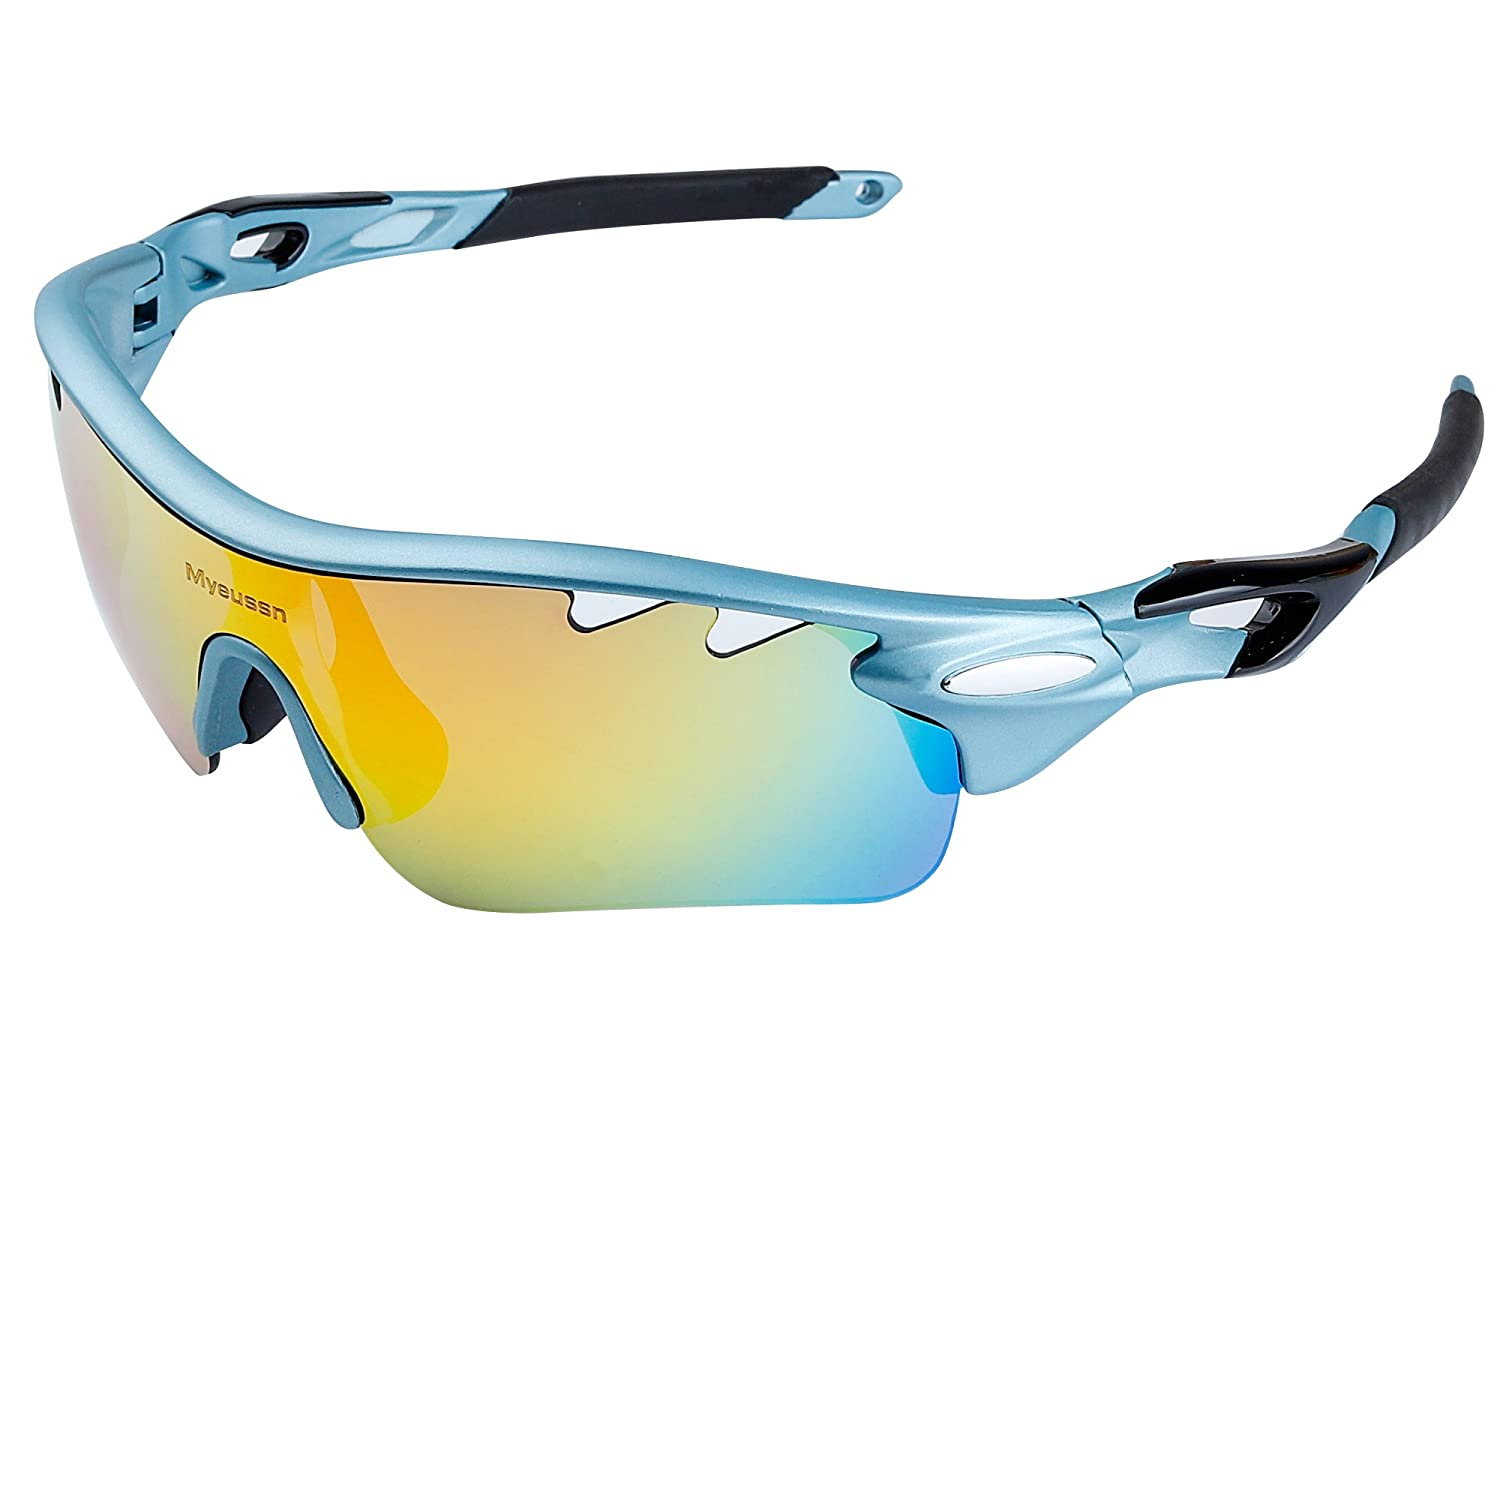 ce4715467f Amazon.com  Myenssn Polarized Sports Sunglasses UV400 With 5  Interchangeable Lenes for Men Women Cycling Running (Blue+Black)  Clothing